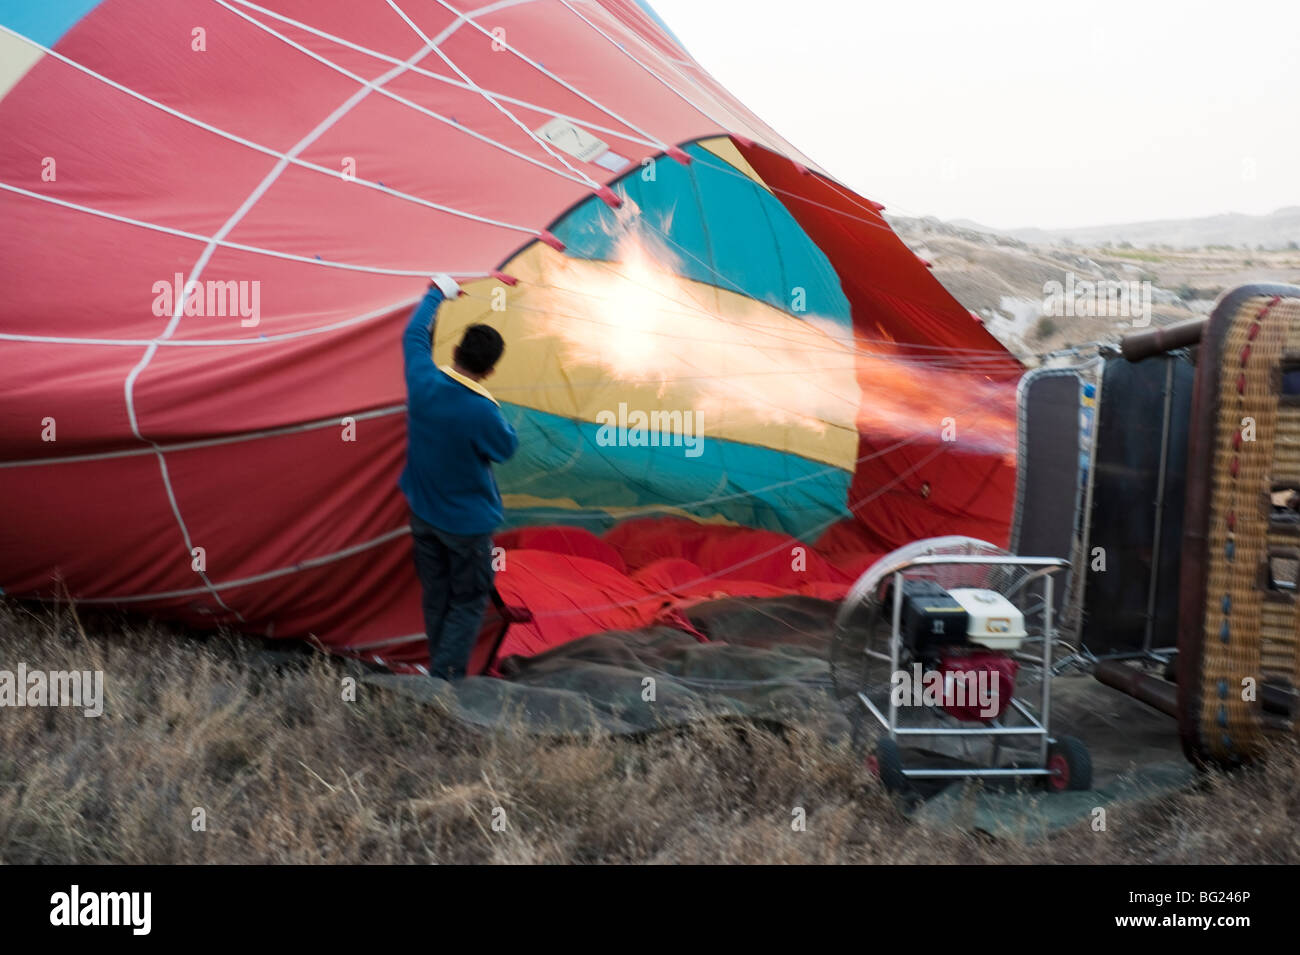 Pre-flight hot air balloon preparation in Cappadocia, Turkey with Kapadokya Balloons - Stock Image